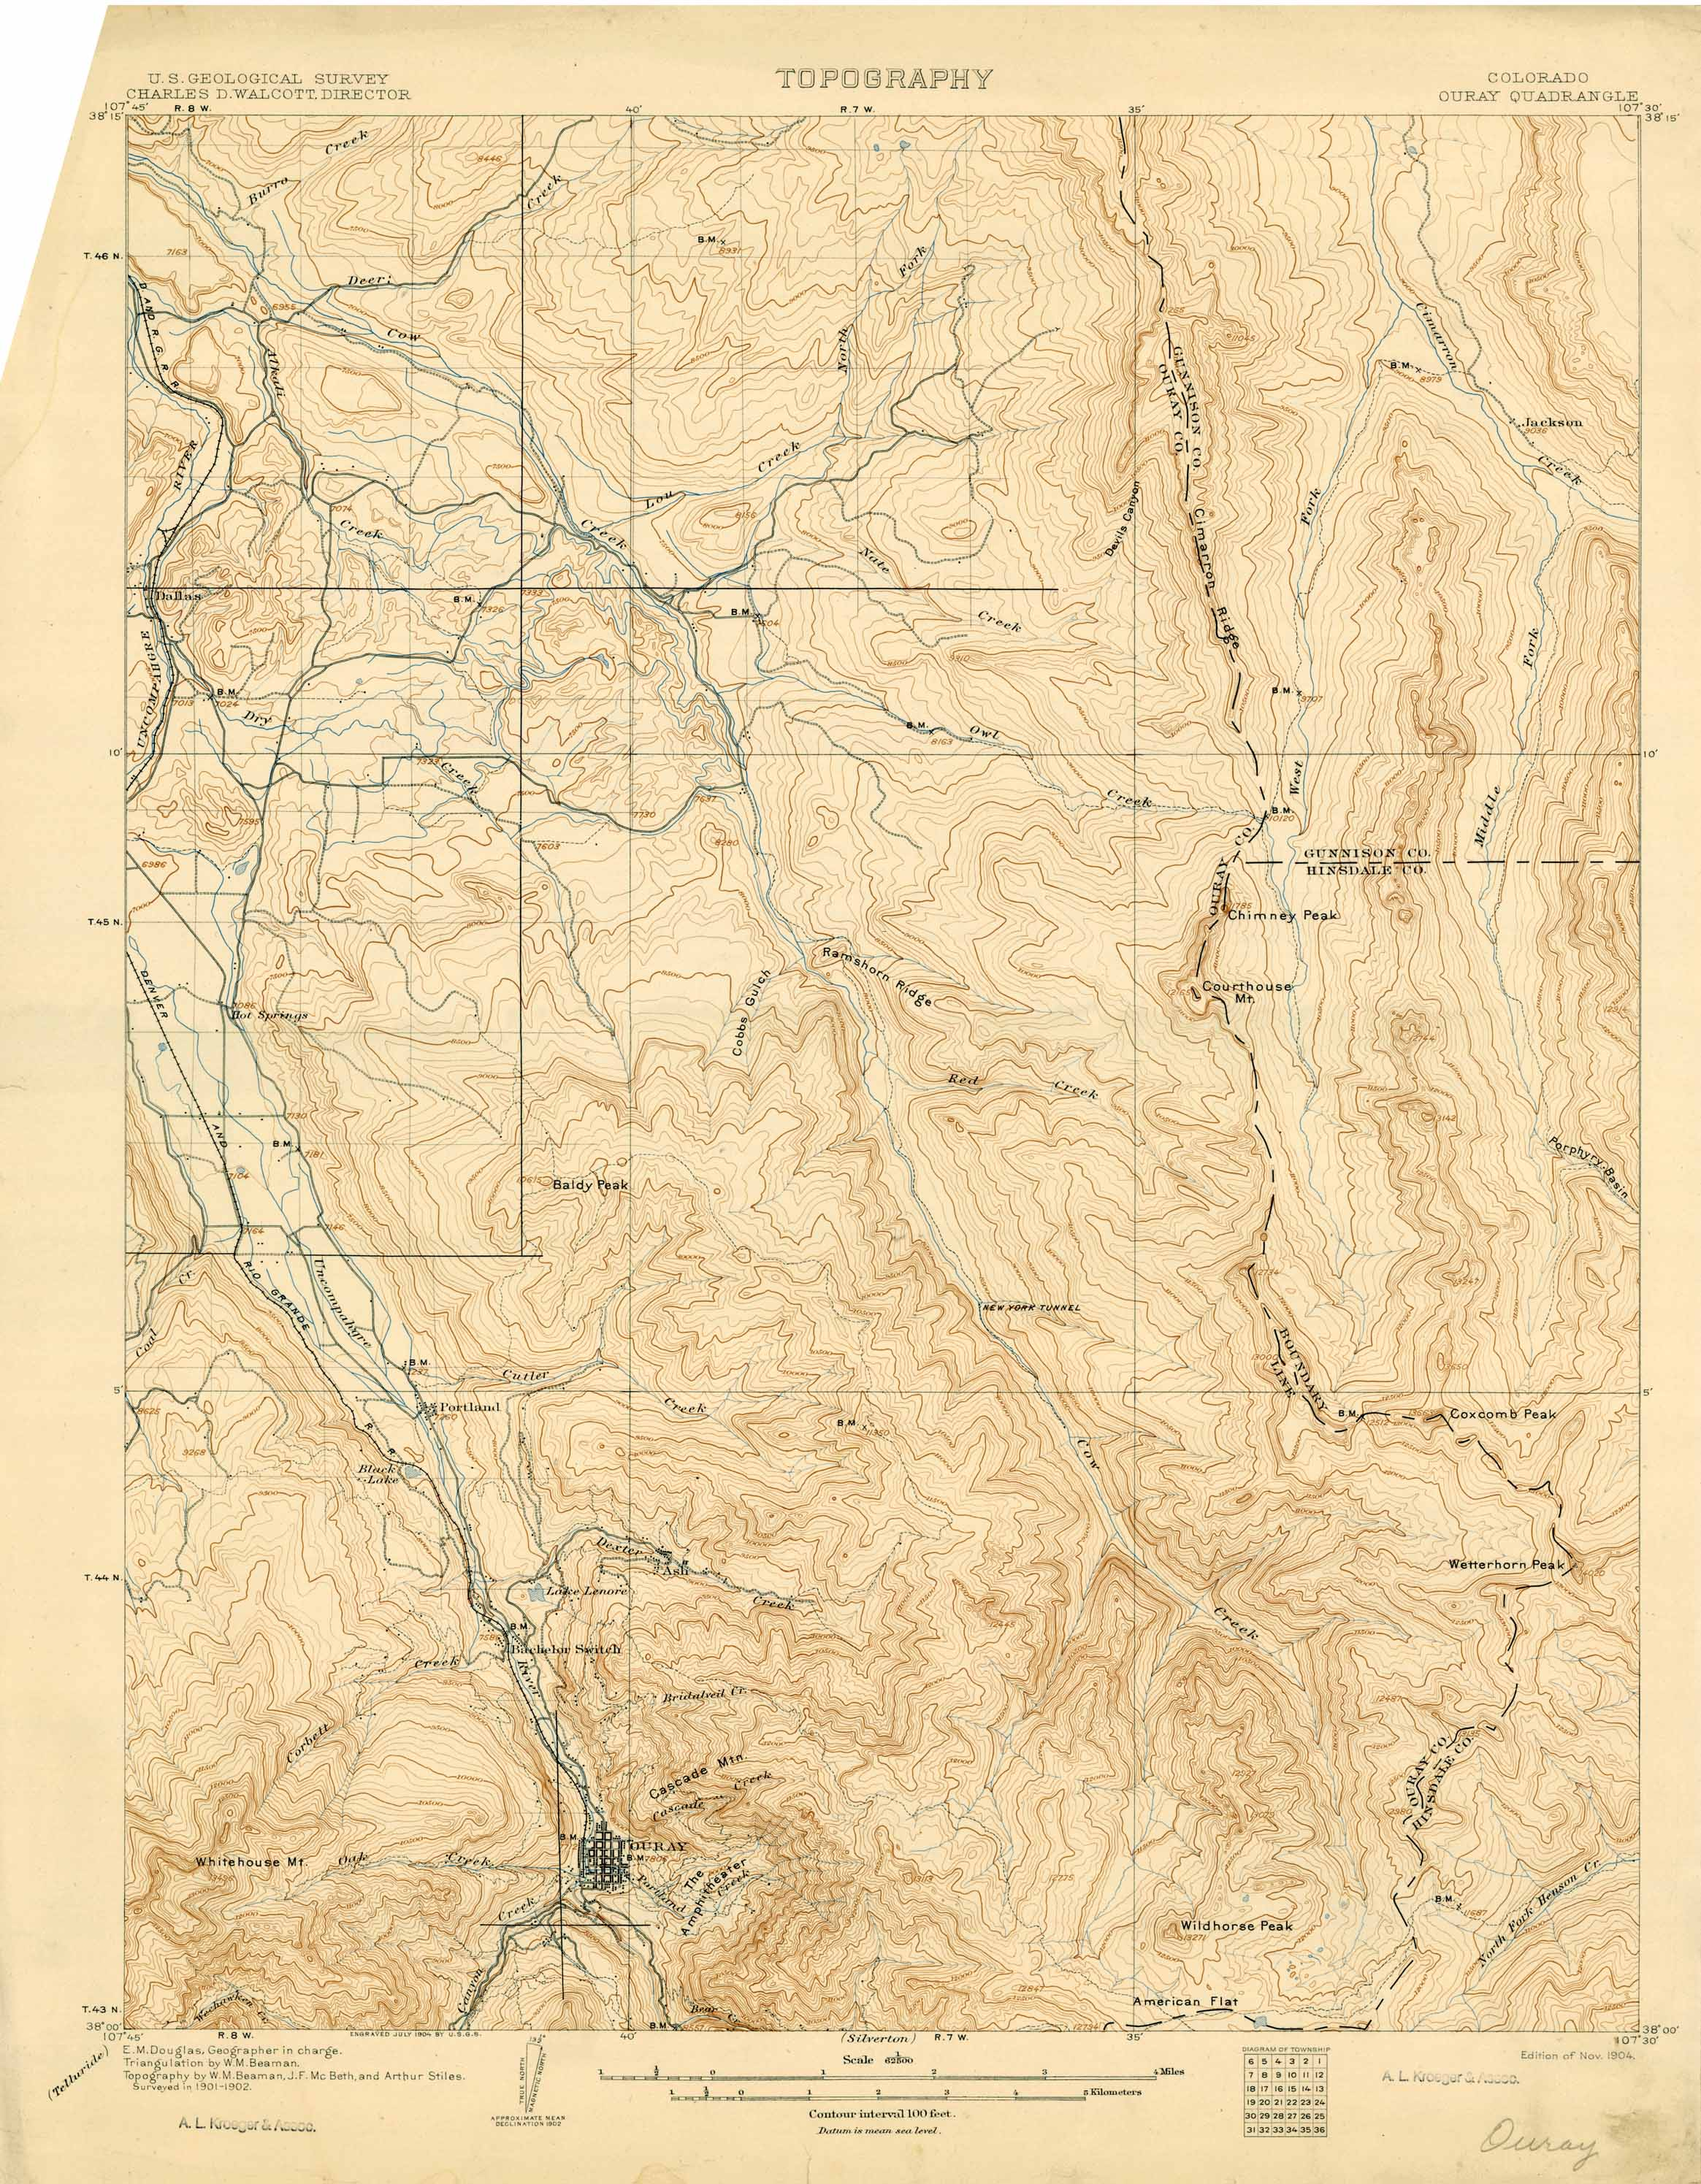 Collection C 007: USGS topographic map of Ouray, CO., at the Center ...